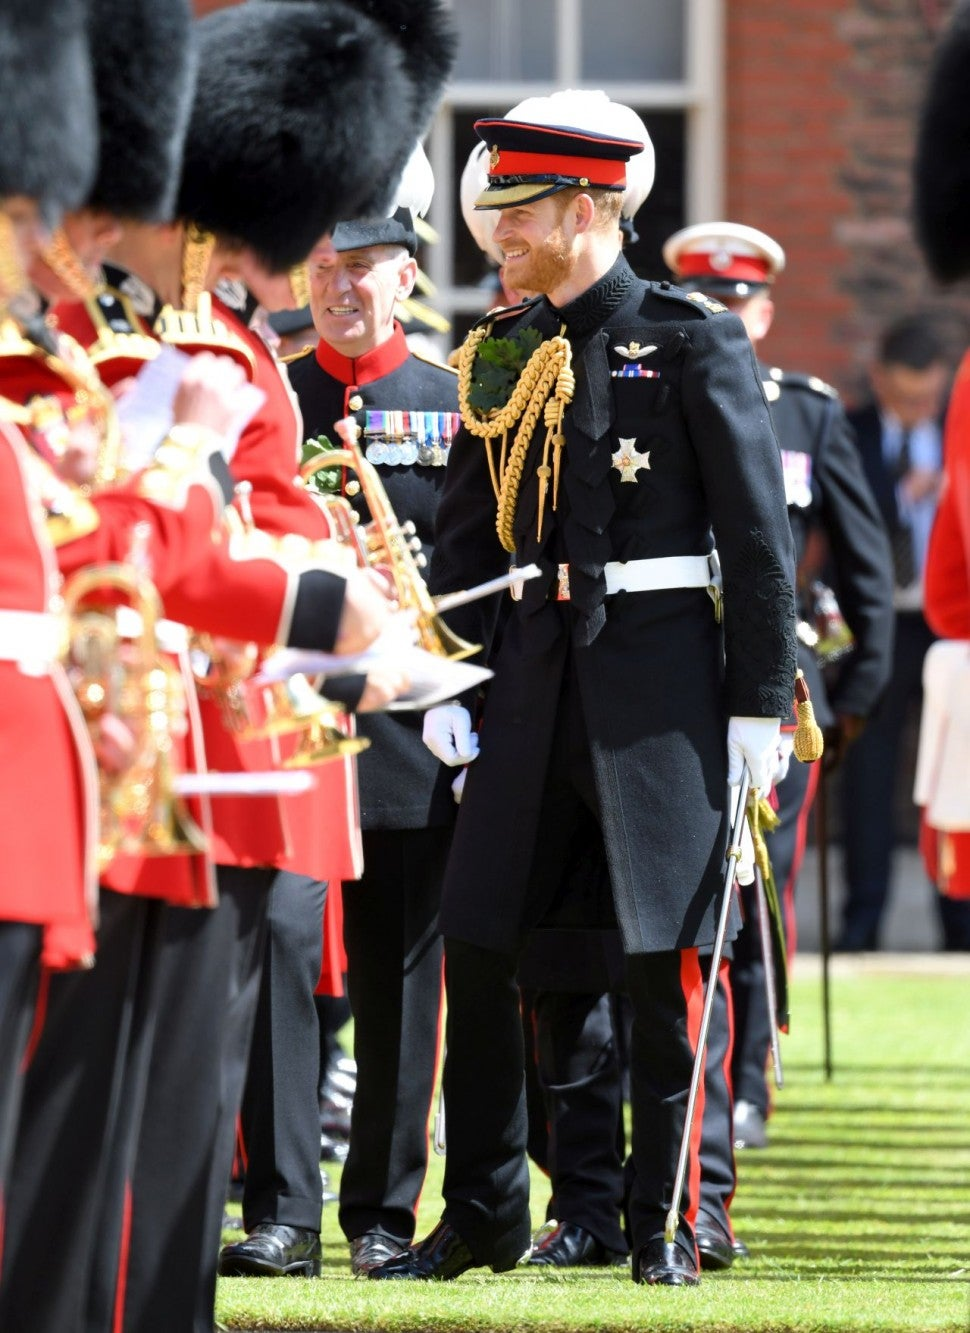 Prince Harry at Founder's Day Parade